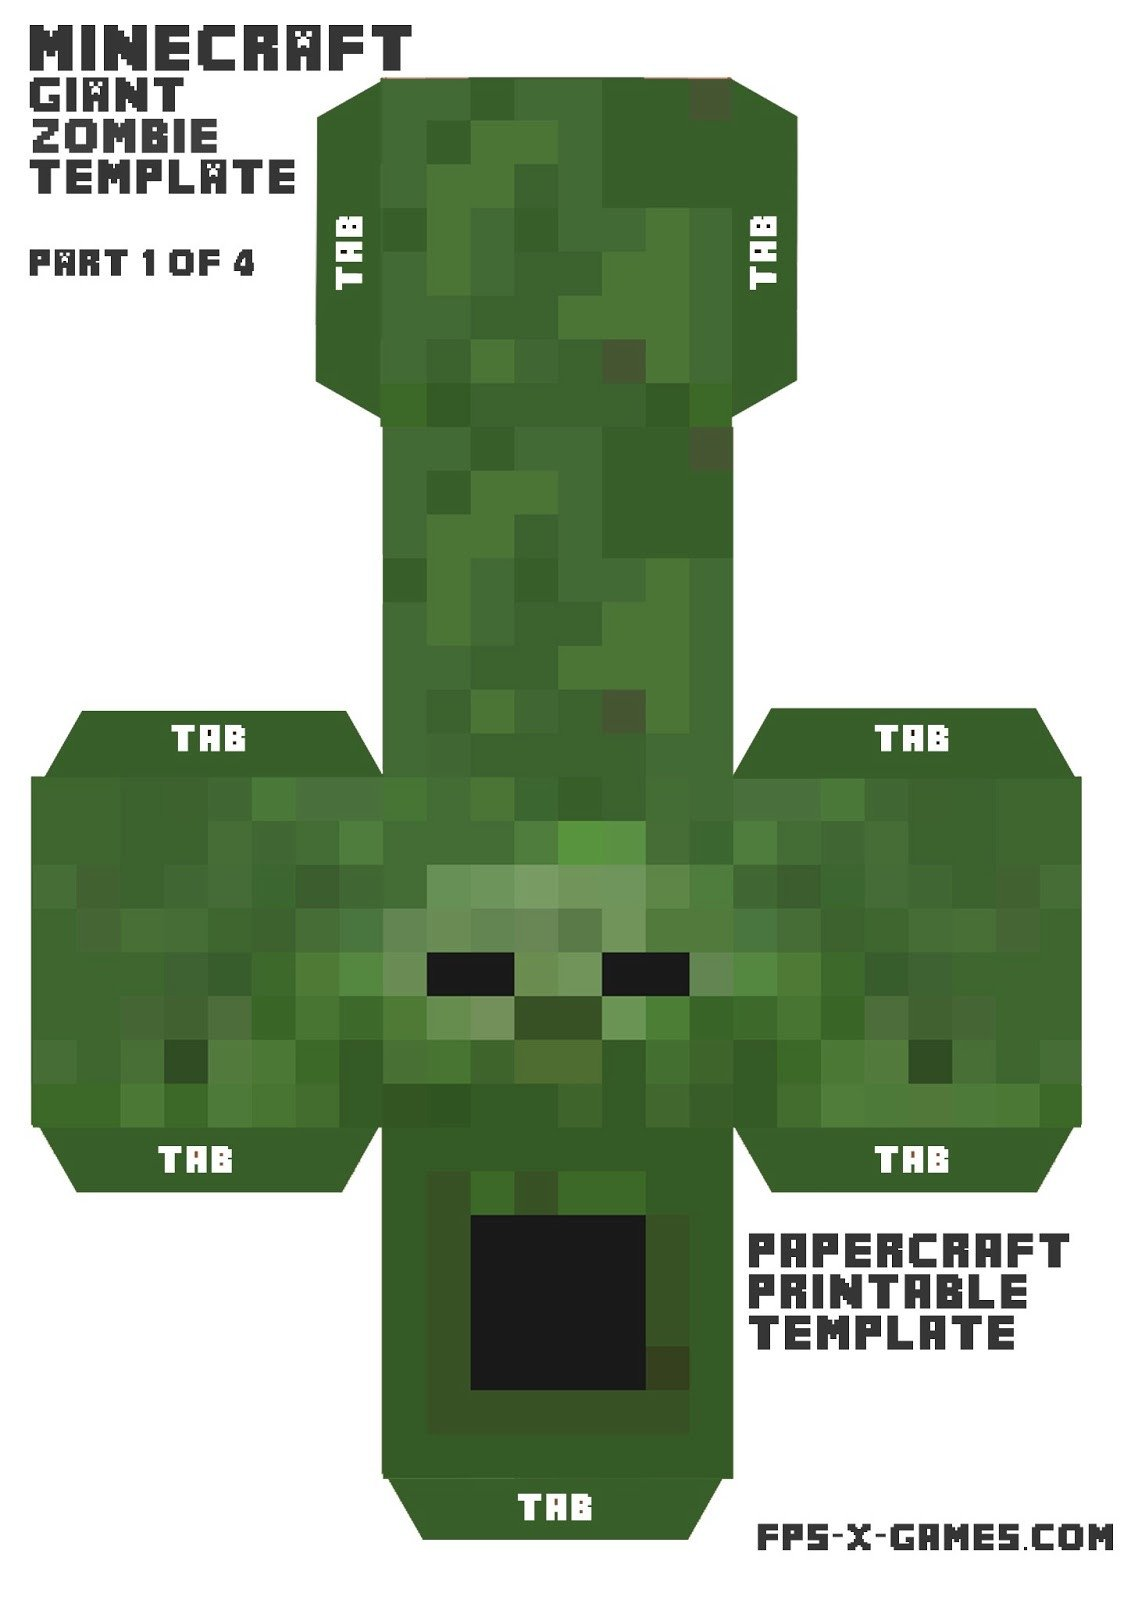 Minecraft Zombie Template 1000 Images About Party Ideas On Pinterest